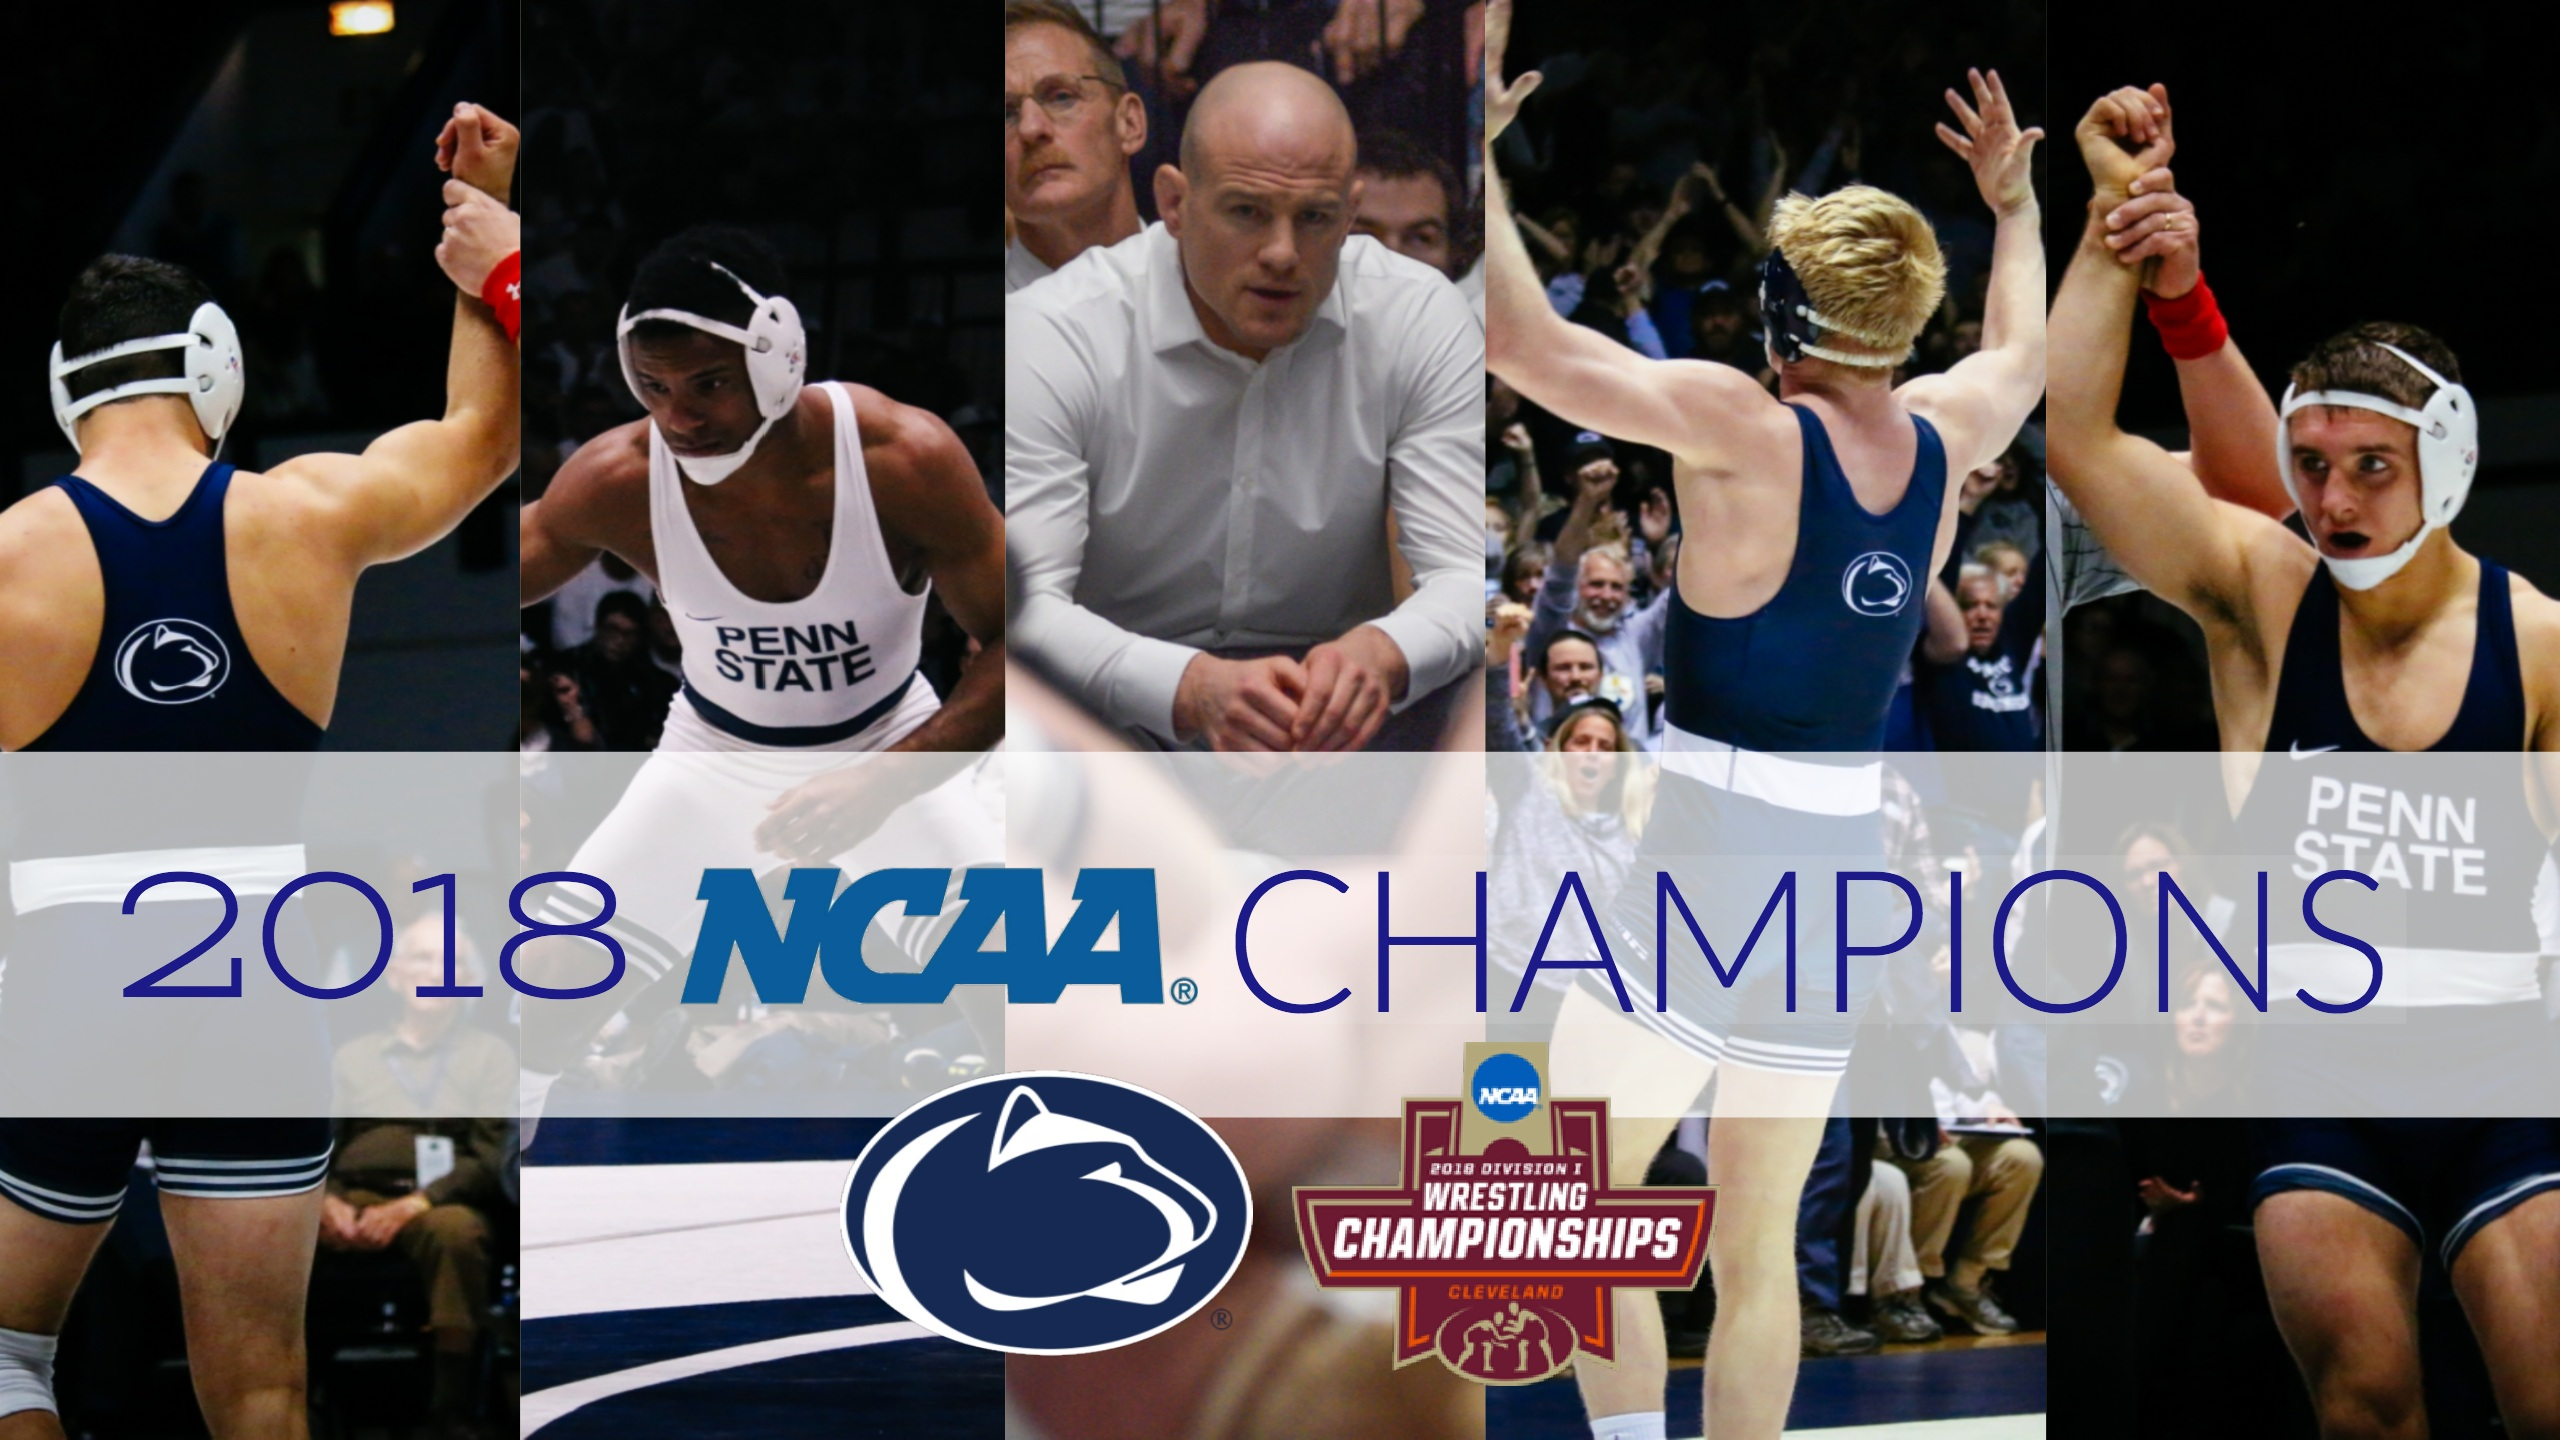 Local College Highlights: Penn State wrestling sends five to NCAA semifinals